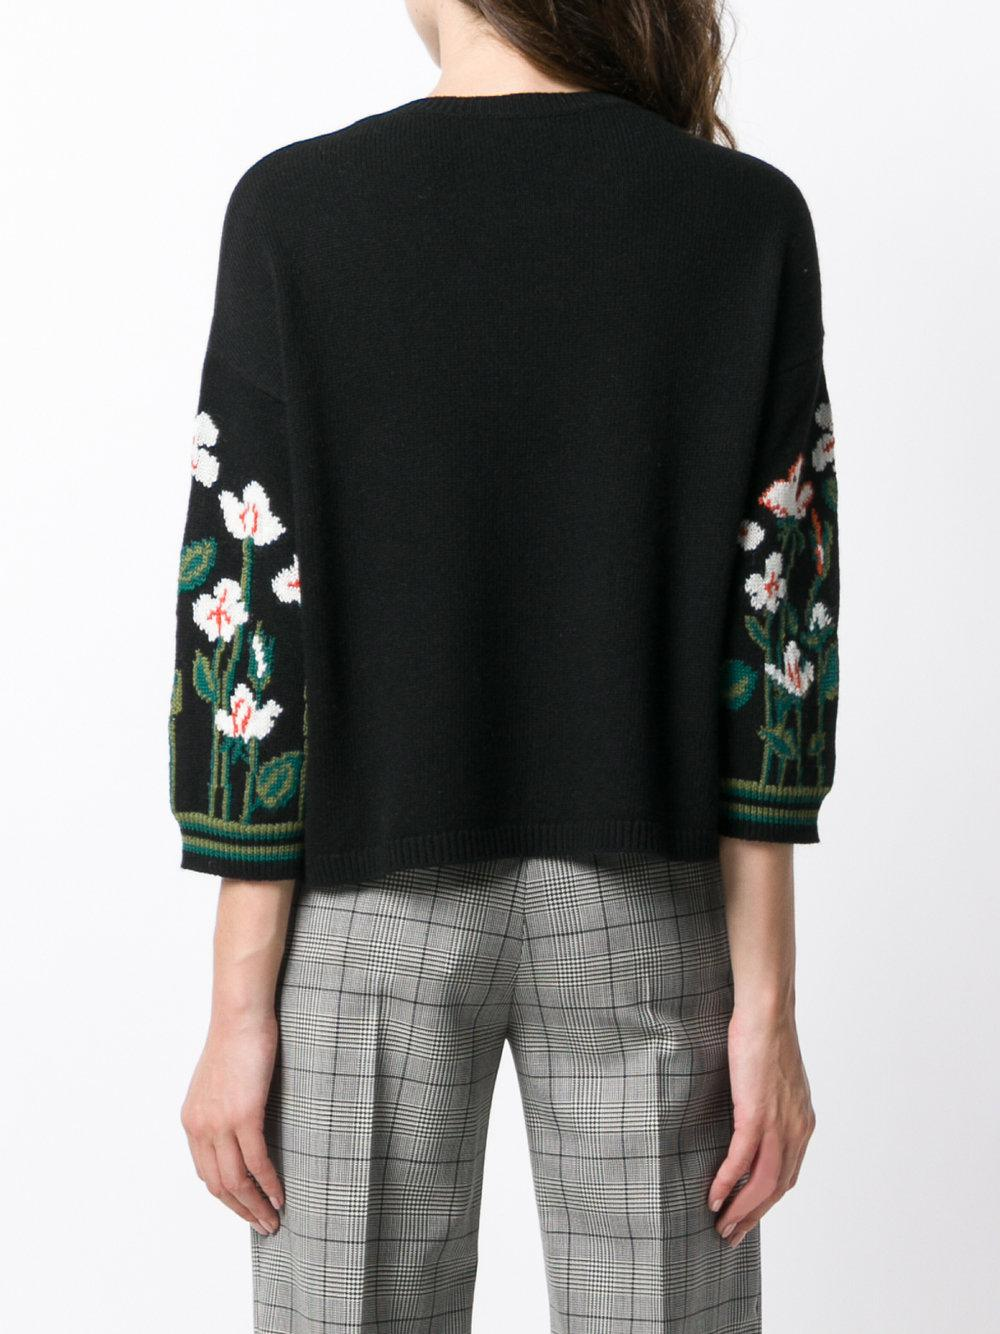 Quality Red Valentino floral three-quarter sleeve sweater 100% Authentic Outlet Discount Sale Visa Payment For Sale Clearance New Arrival HeXKQ1J